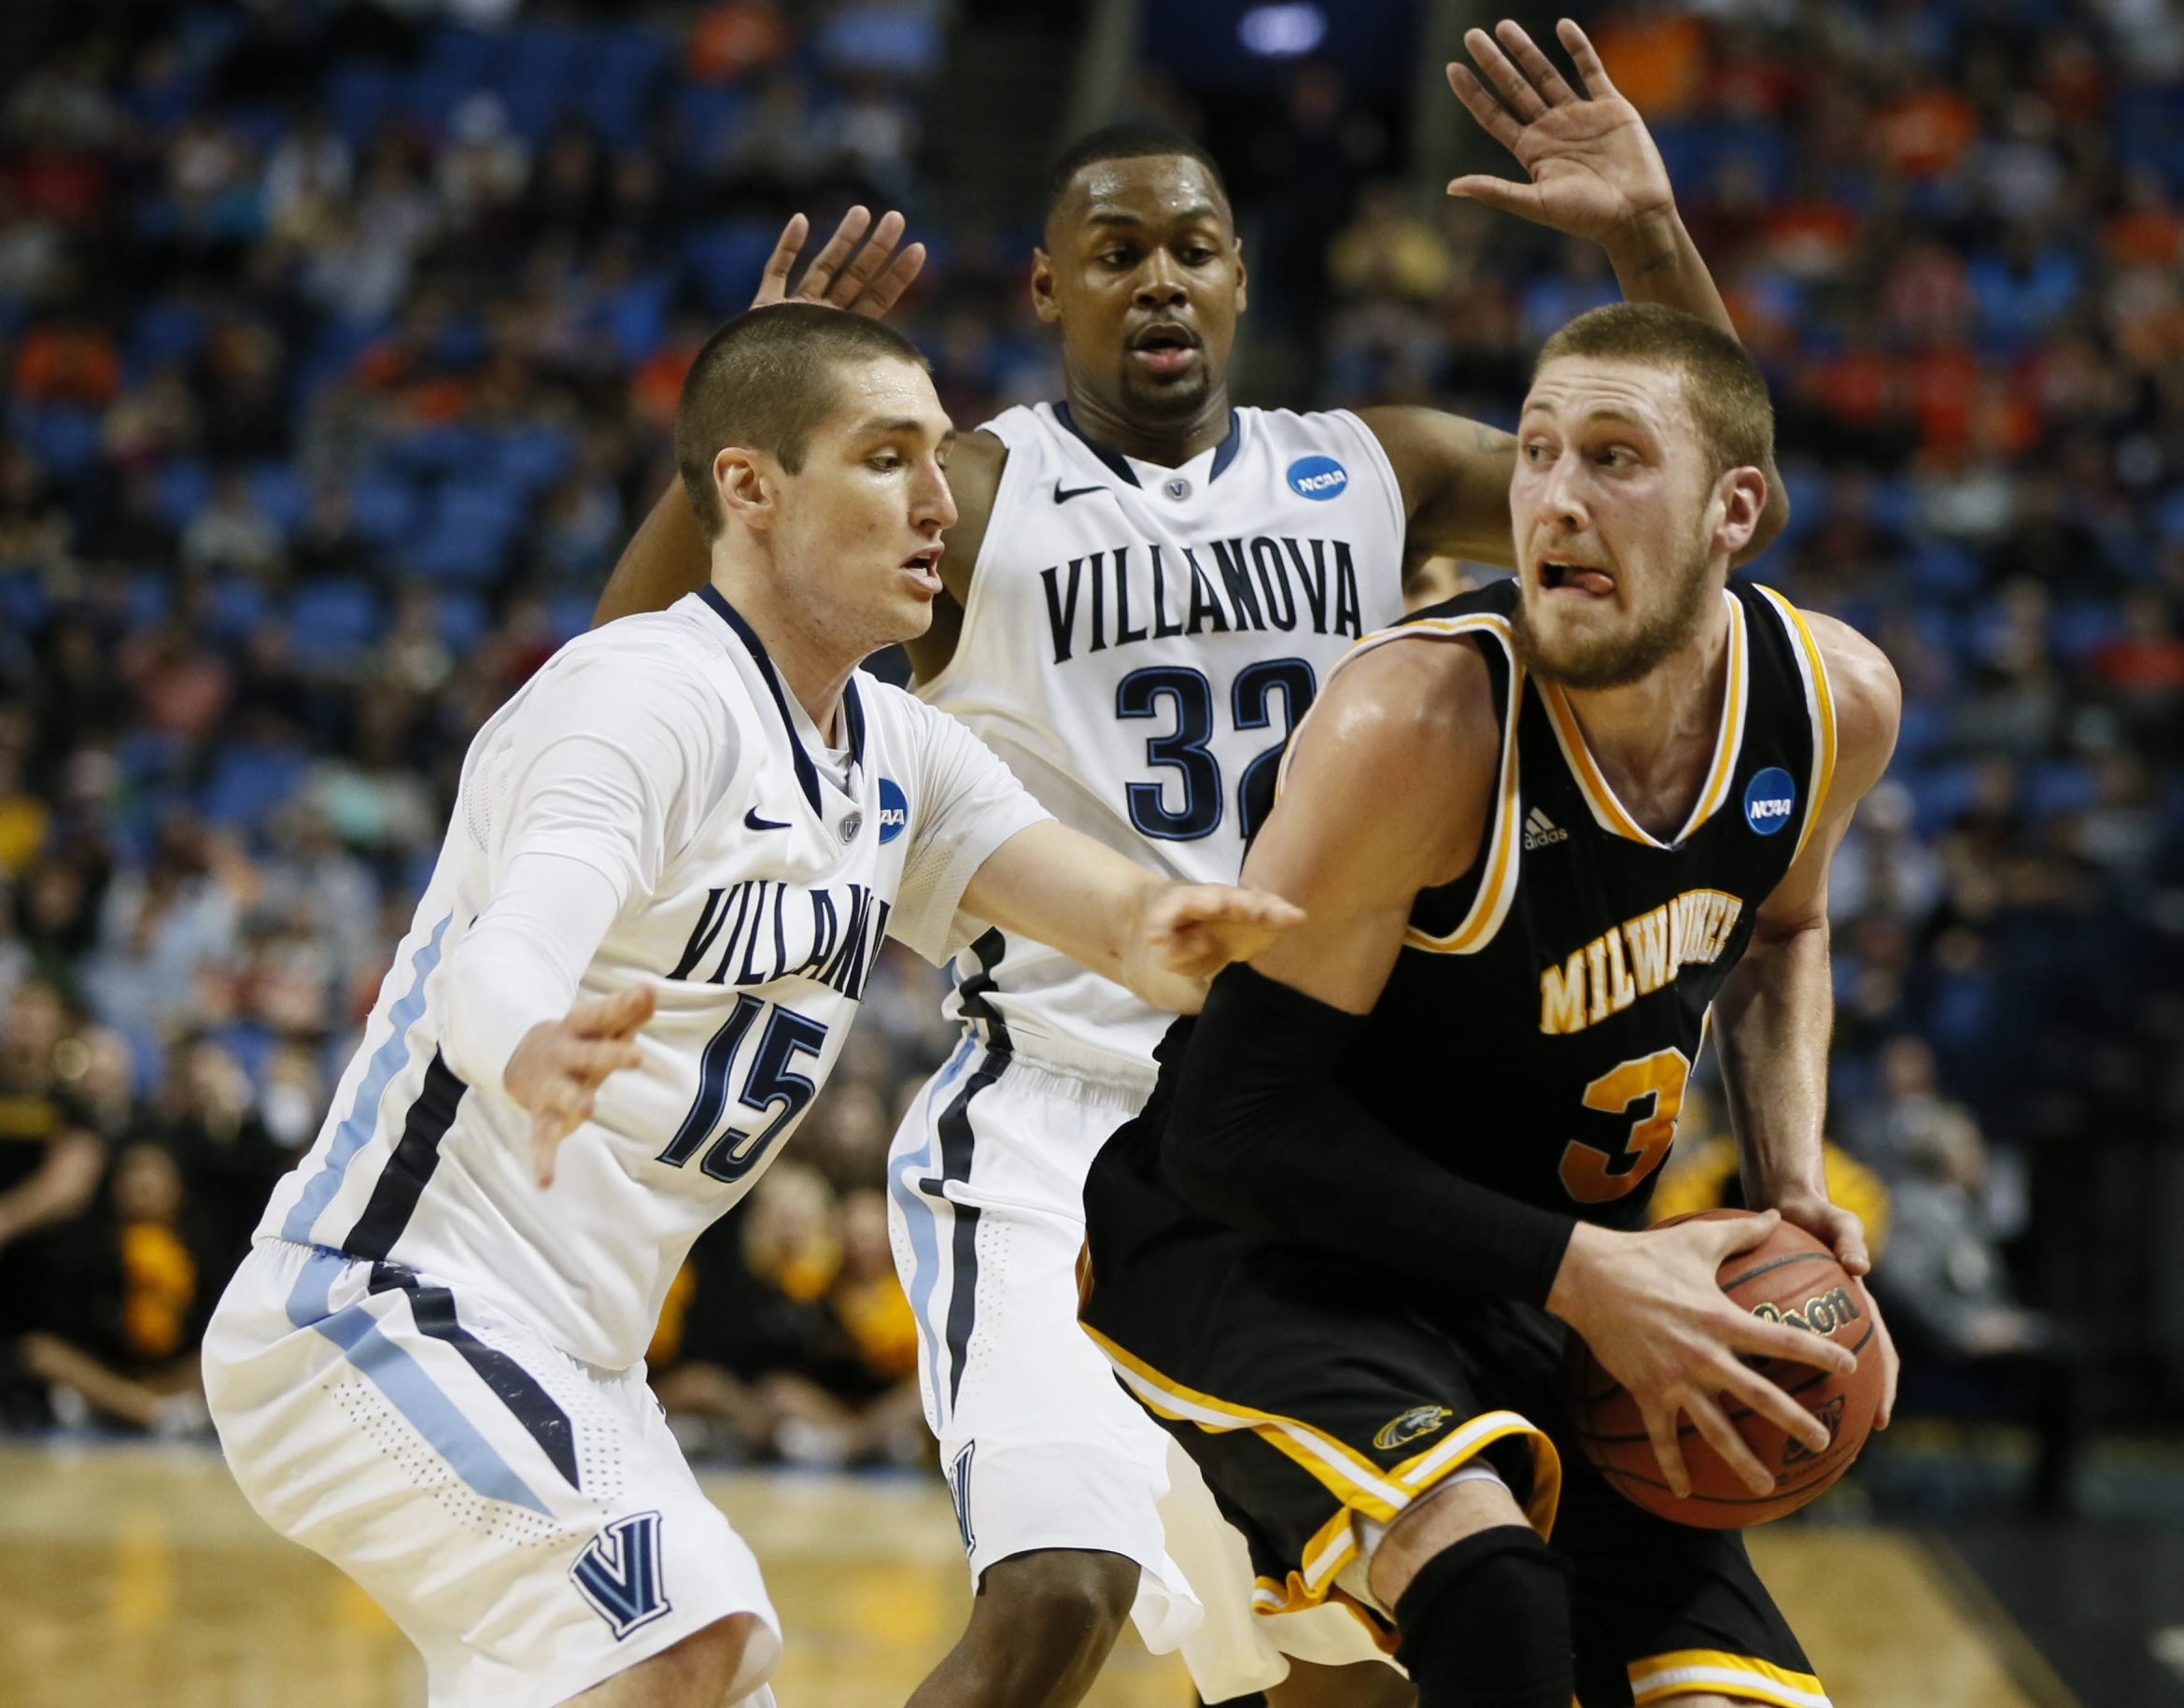 Milwaukee's Matt Tiby (32) looks for options while being double-teamed by Villanova's Ryan Arcidiacono, left, and James Bell.  (Harry Scull Jr./Buffalo News)